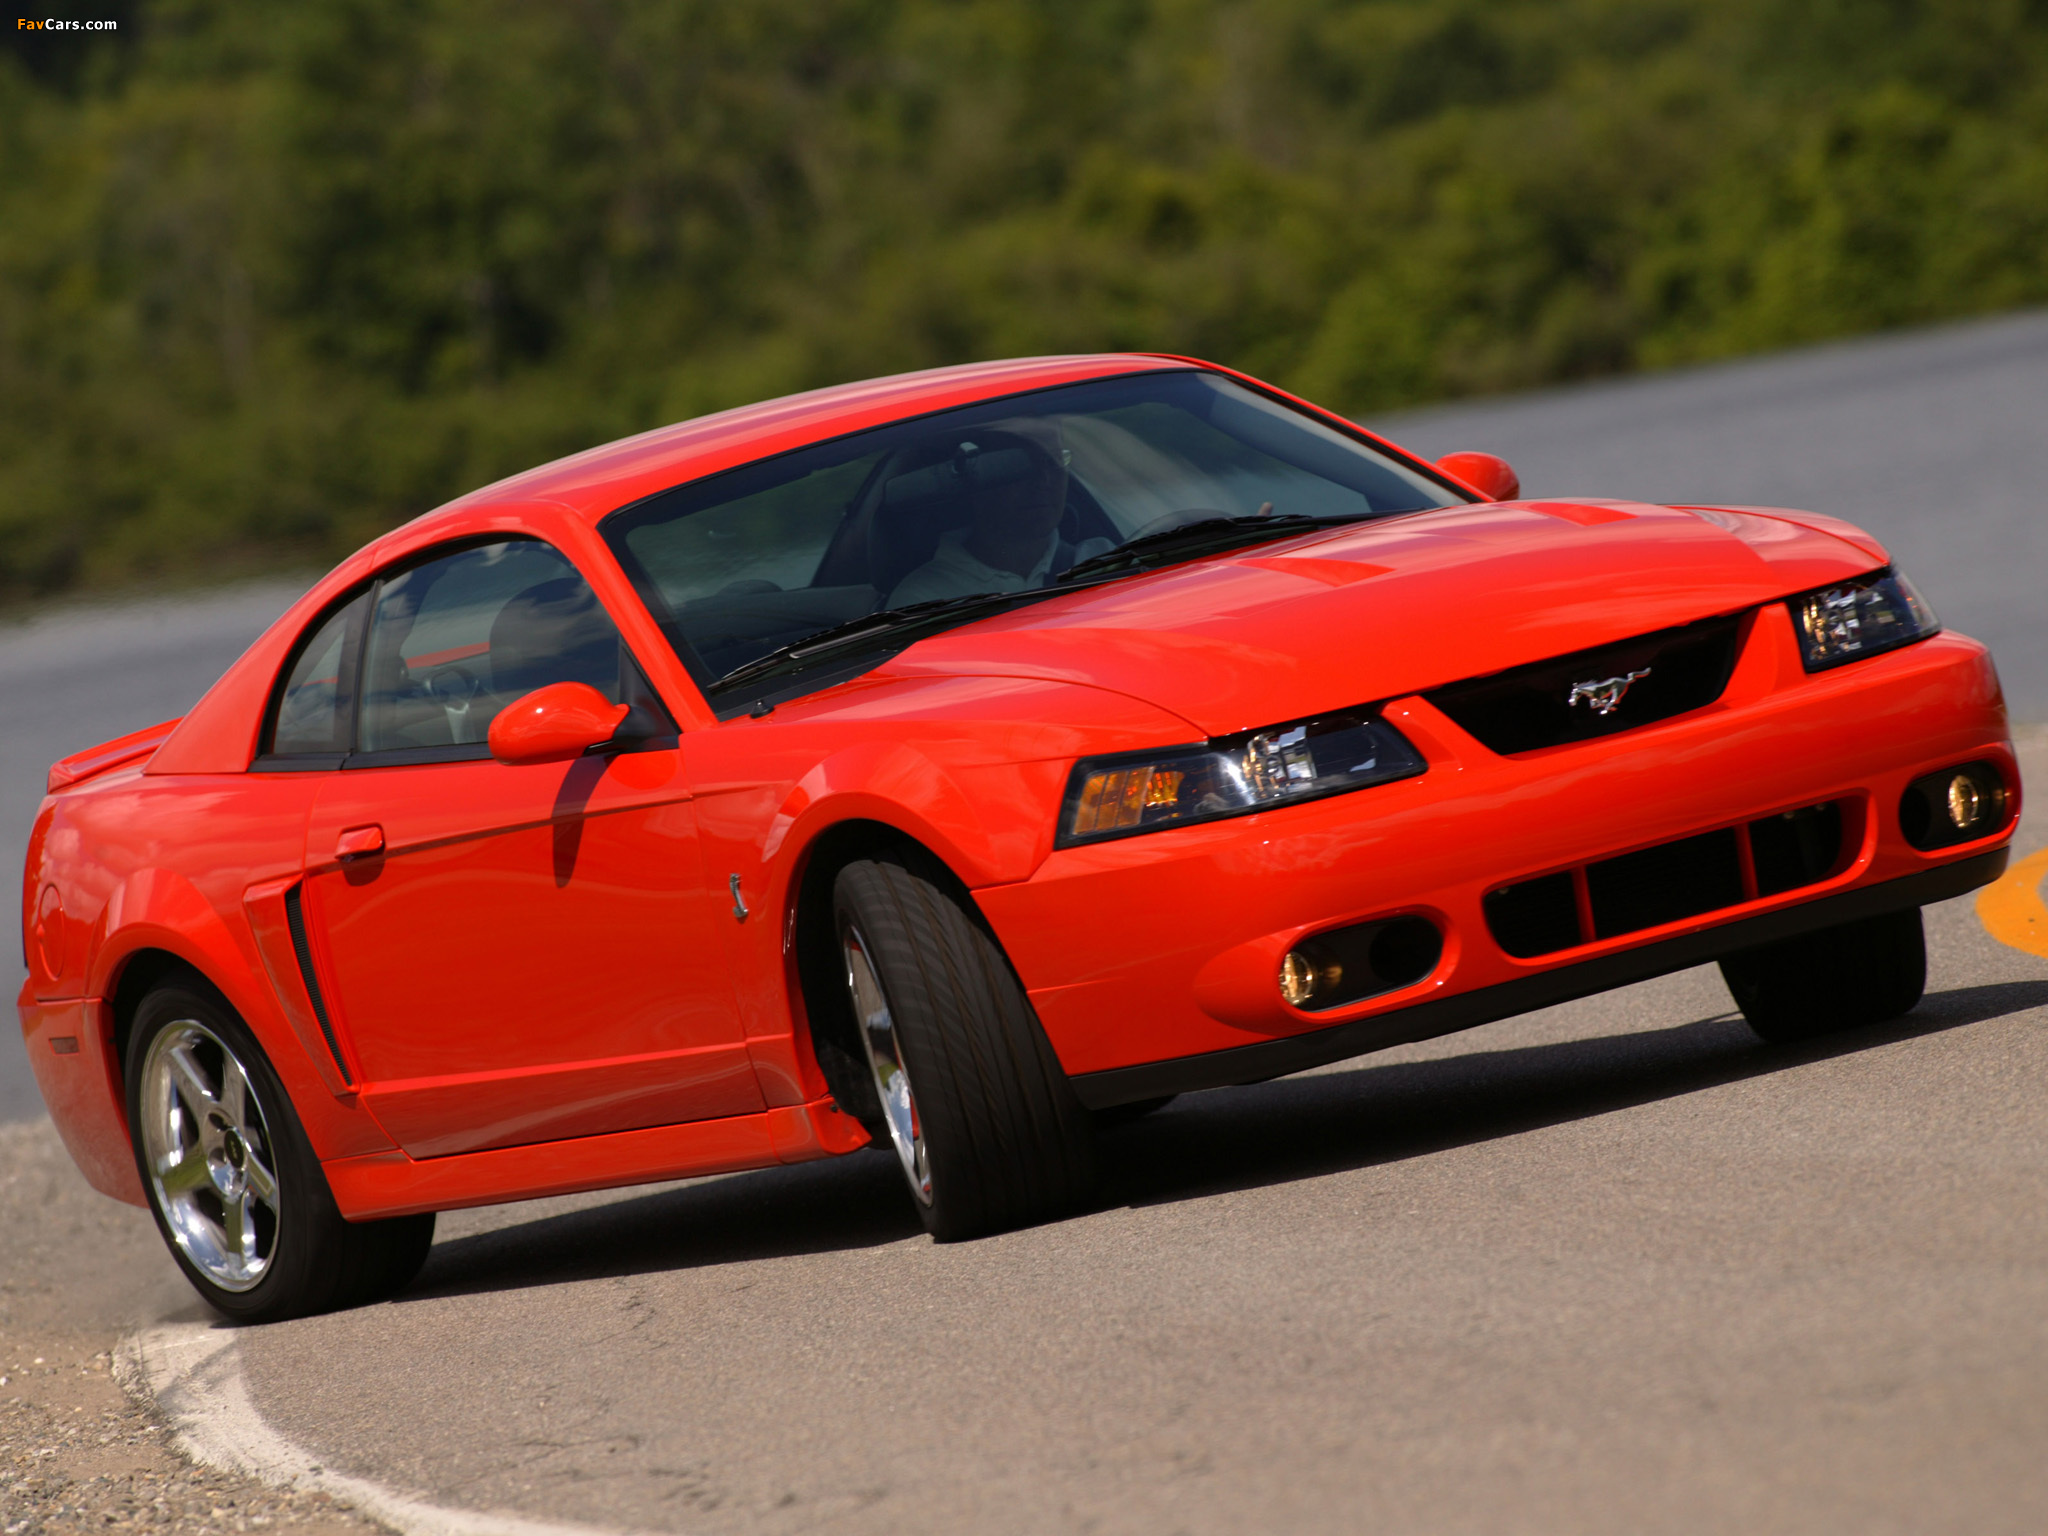 1997 Mustang Cobra Service Manual Free Download